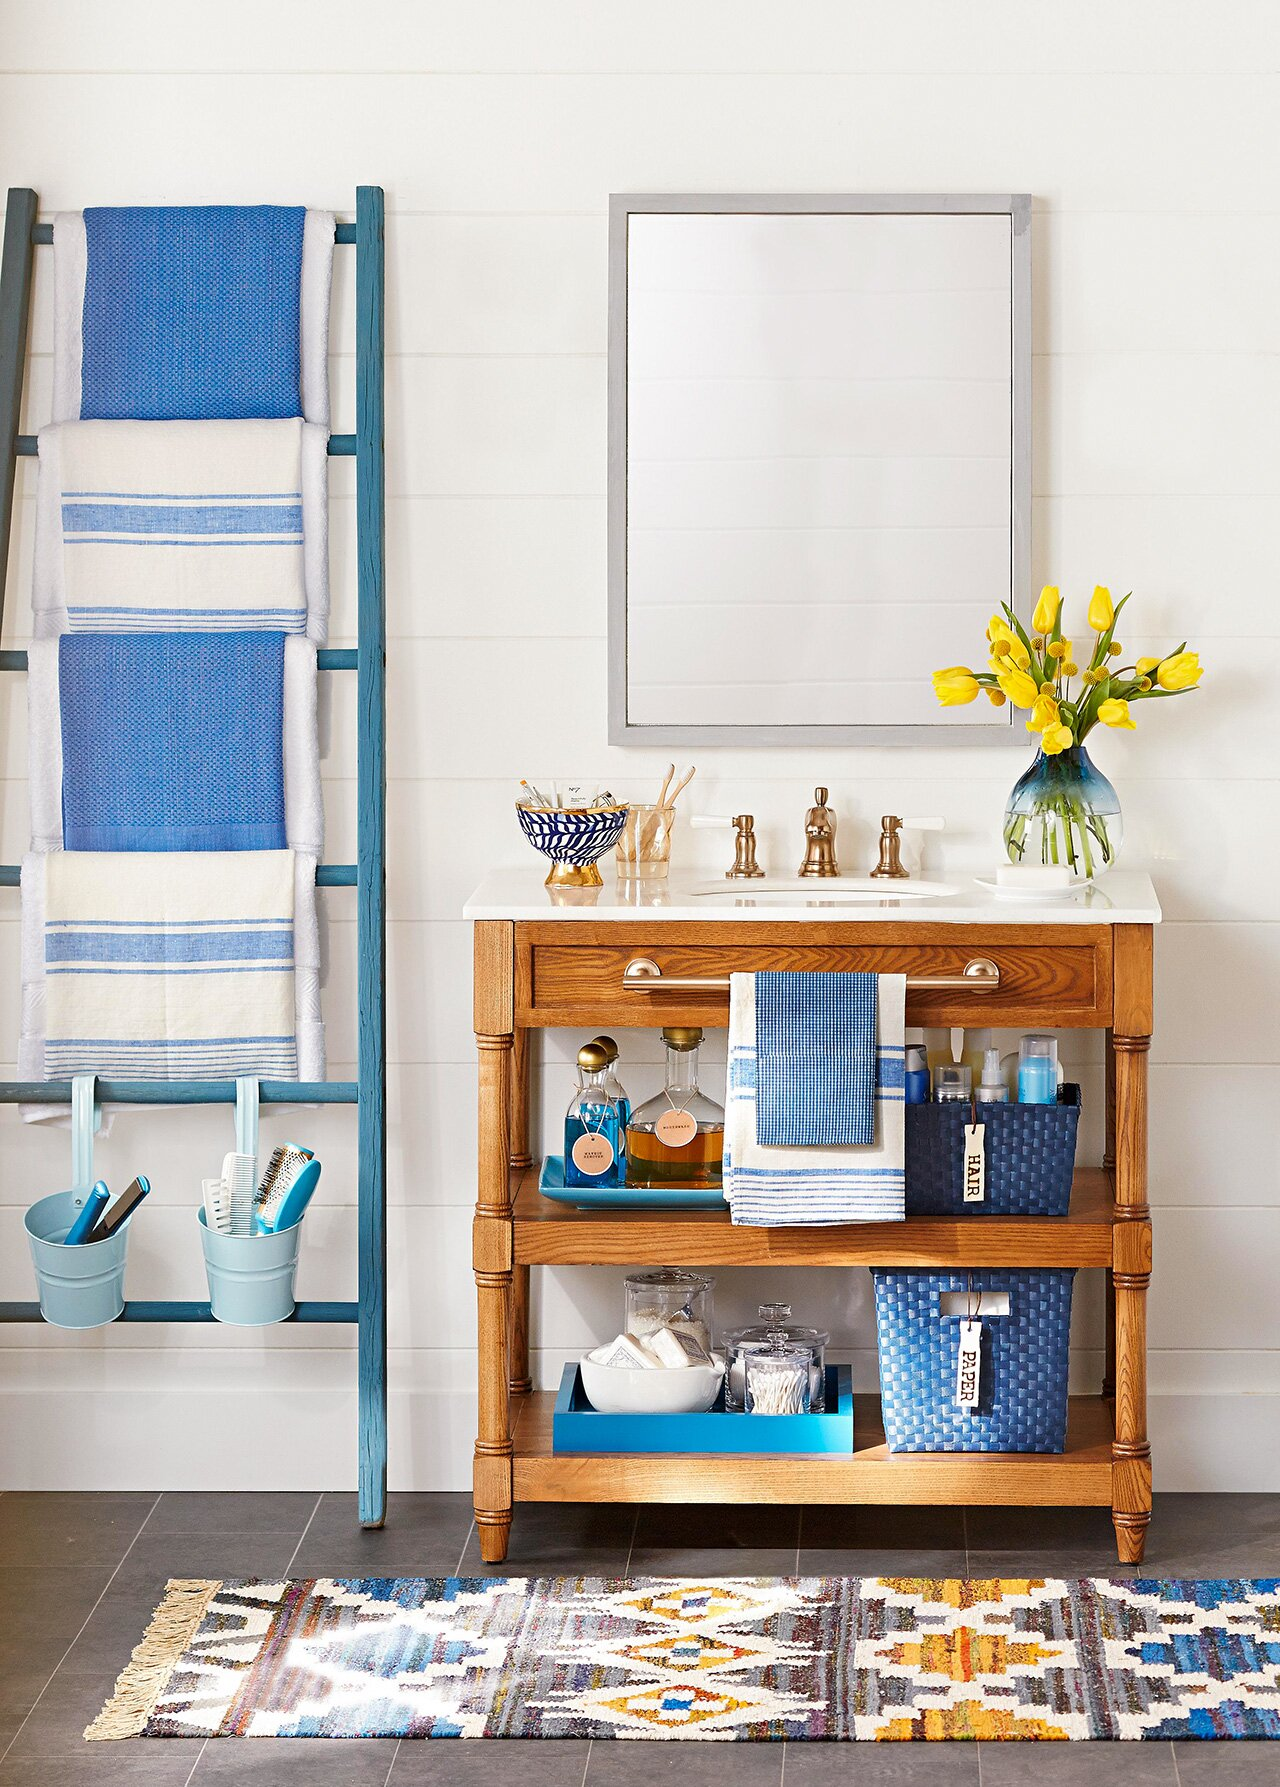 6 Towel Display Ideas for Pretty (and Practical) Bathroom Storage